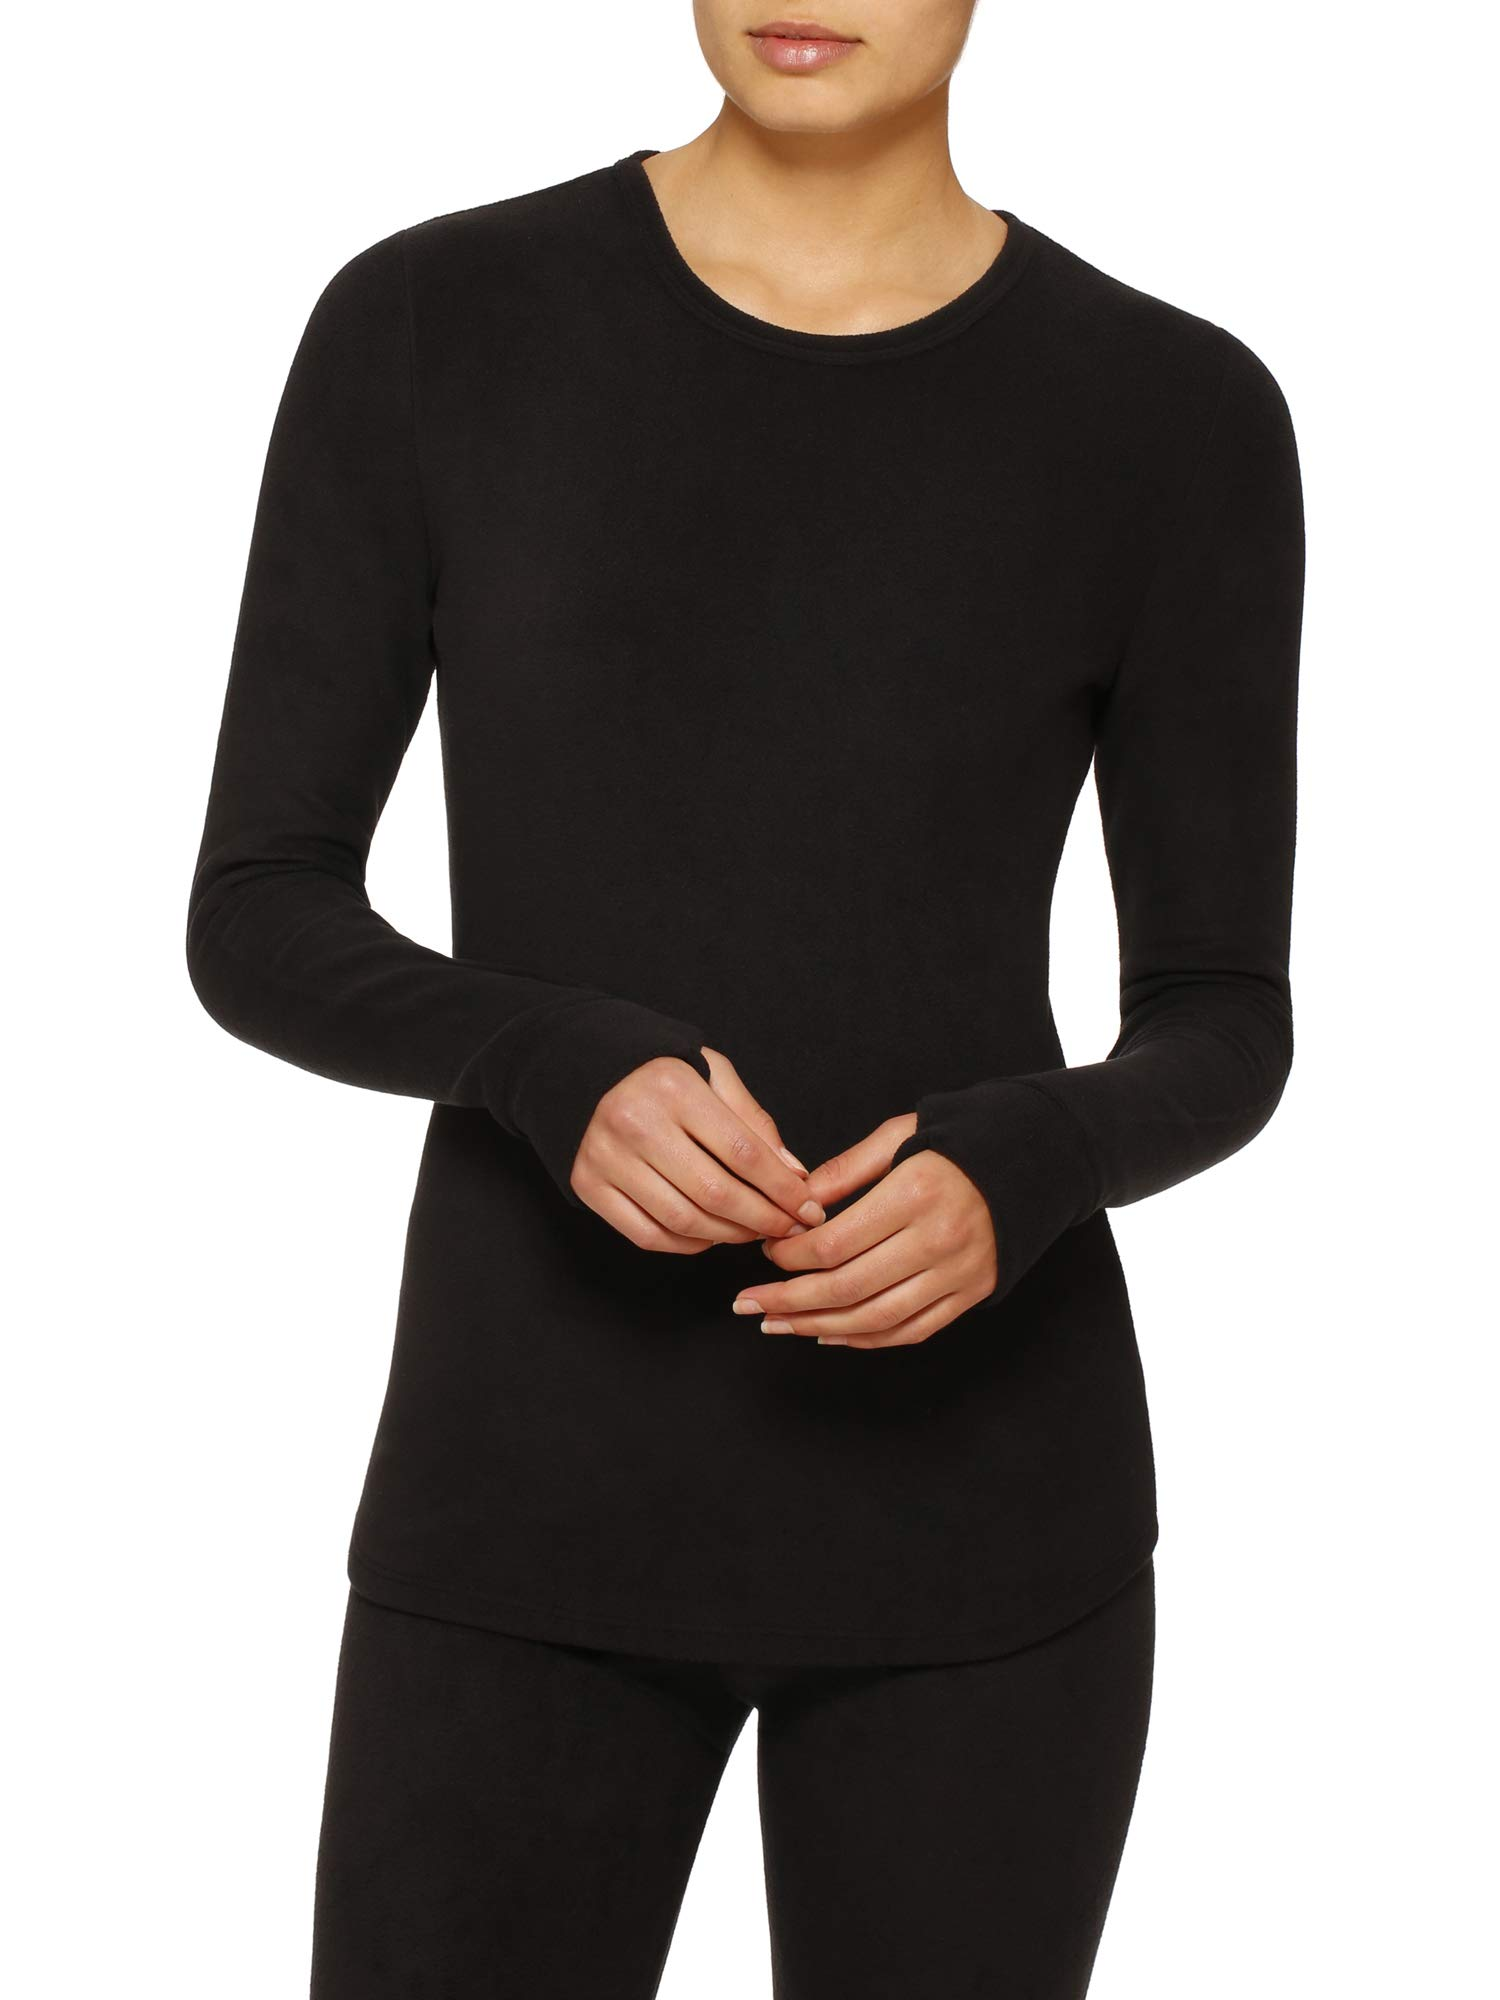 Cuddl Duds ClimateRight Women's Stretch Fleece Warm Underwear Long Sleeve Top (4XL - Black) by Cuddl Duds